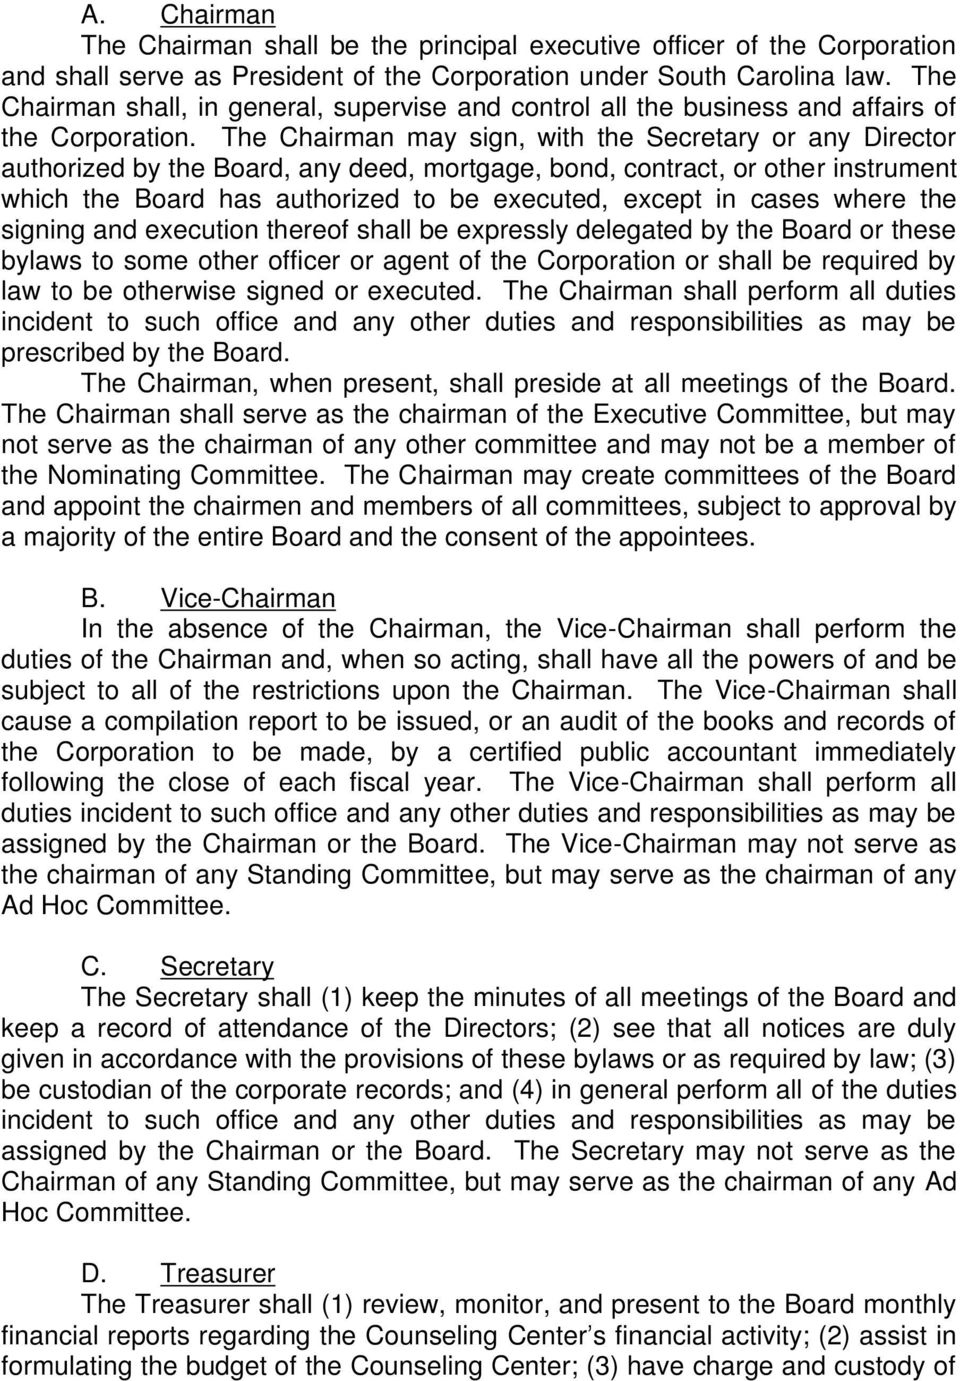 The Chairman may sign, with the Secretary or any Director authorized by the Board, any deed, mortgage, bond, contract, or other instrument which the Board has authorized to be executed, except in